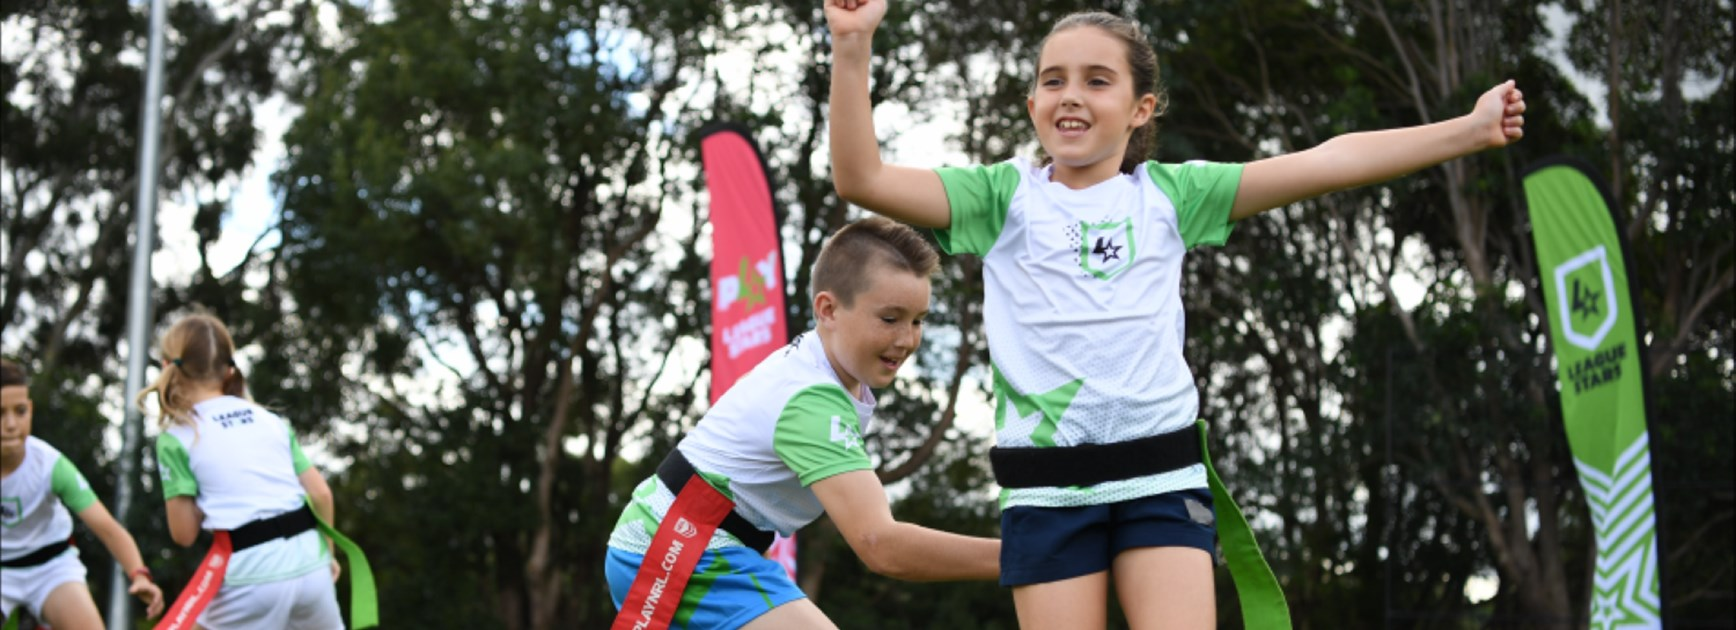 Cairns school holiday fun with League Stars clinic